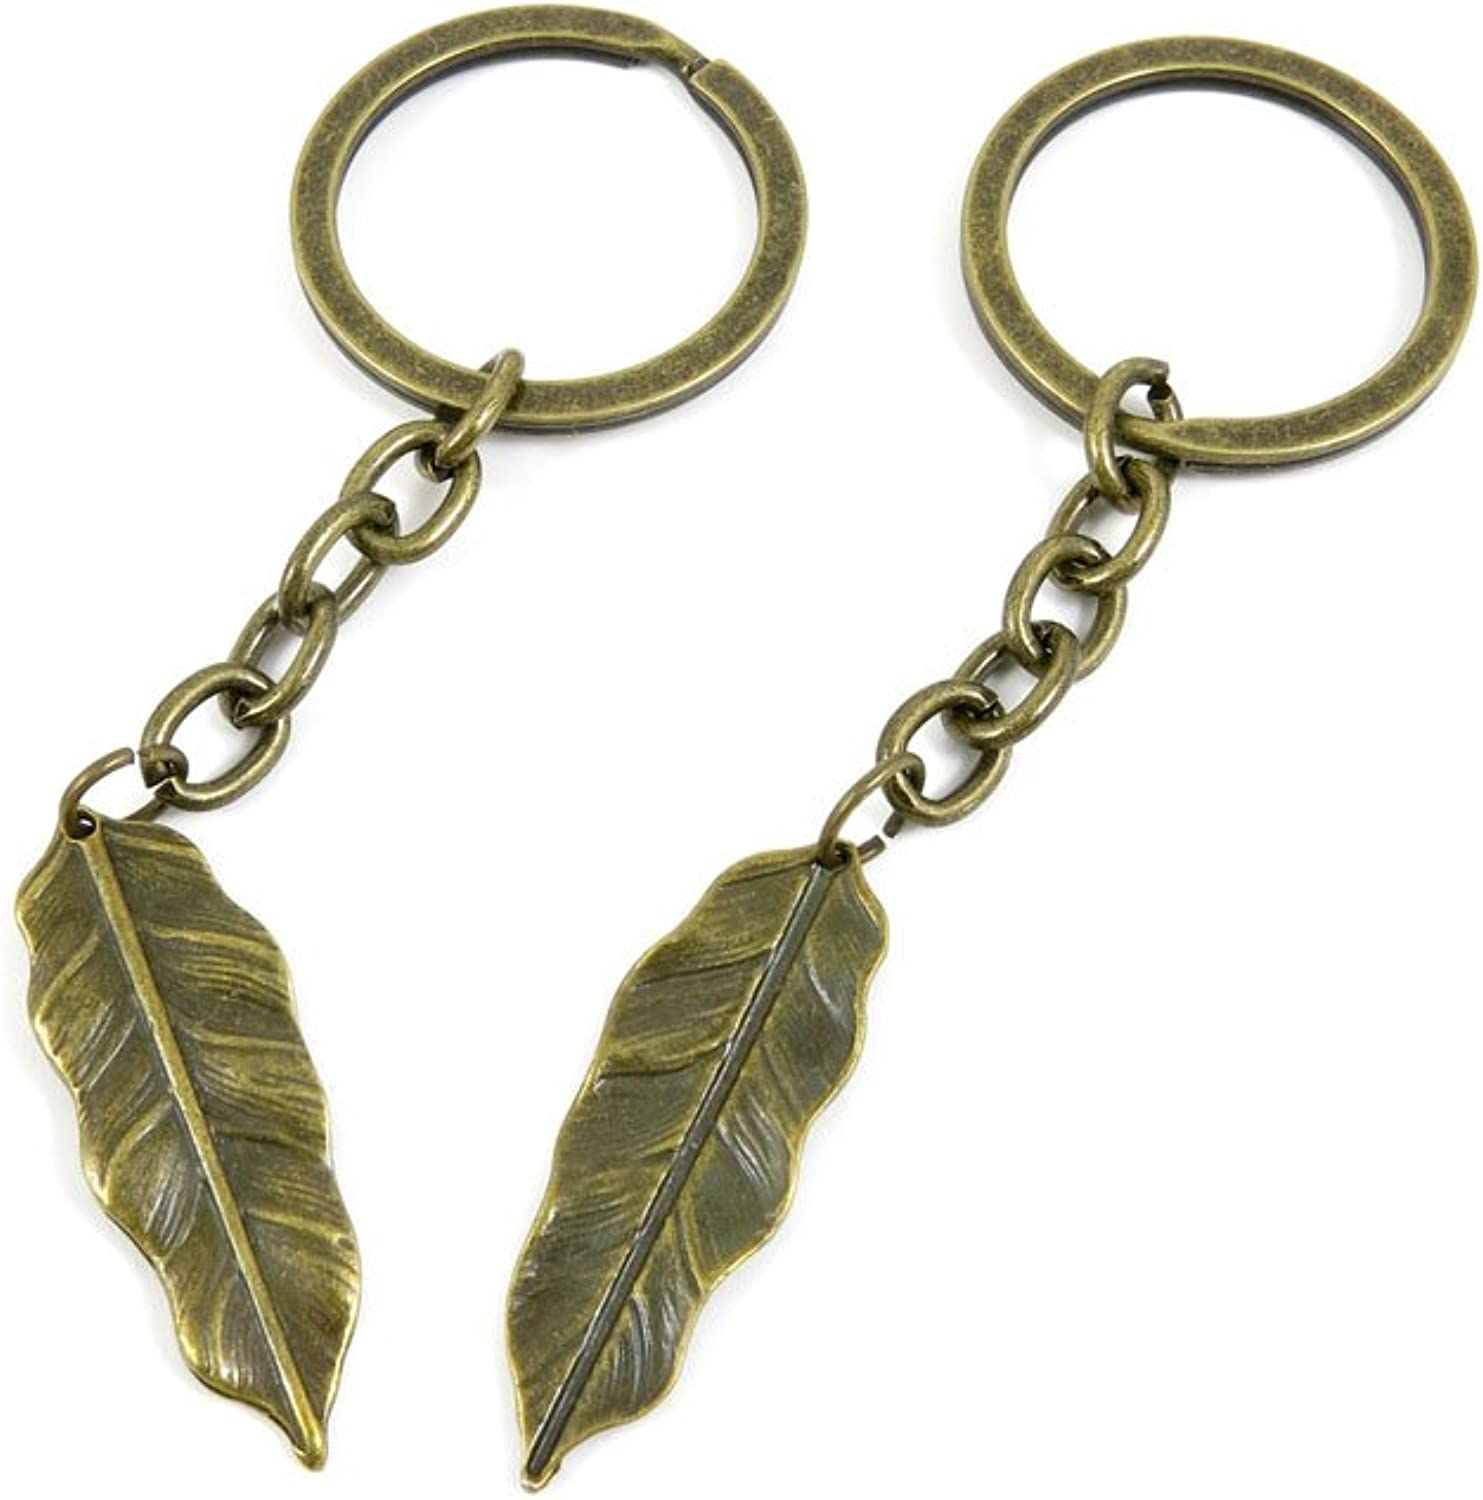 190 Pieces Fashion Jewelry Keyring Keychain Door Car Key Tag Ring Chain Supplier Supply Wholesale Bulk Lots K5XX2 Leaf Feather